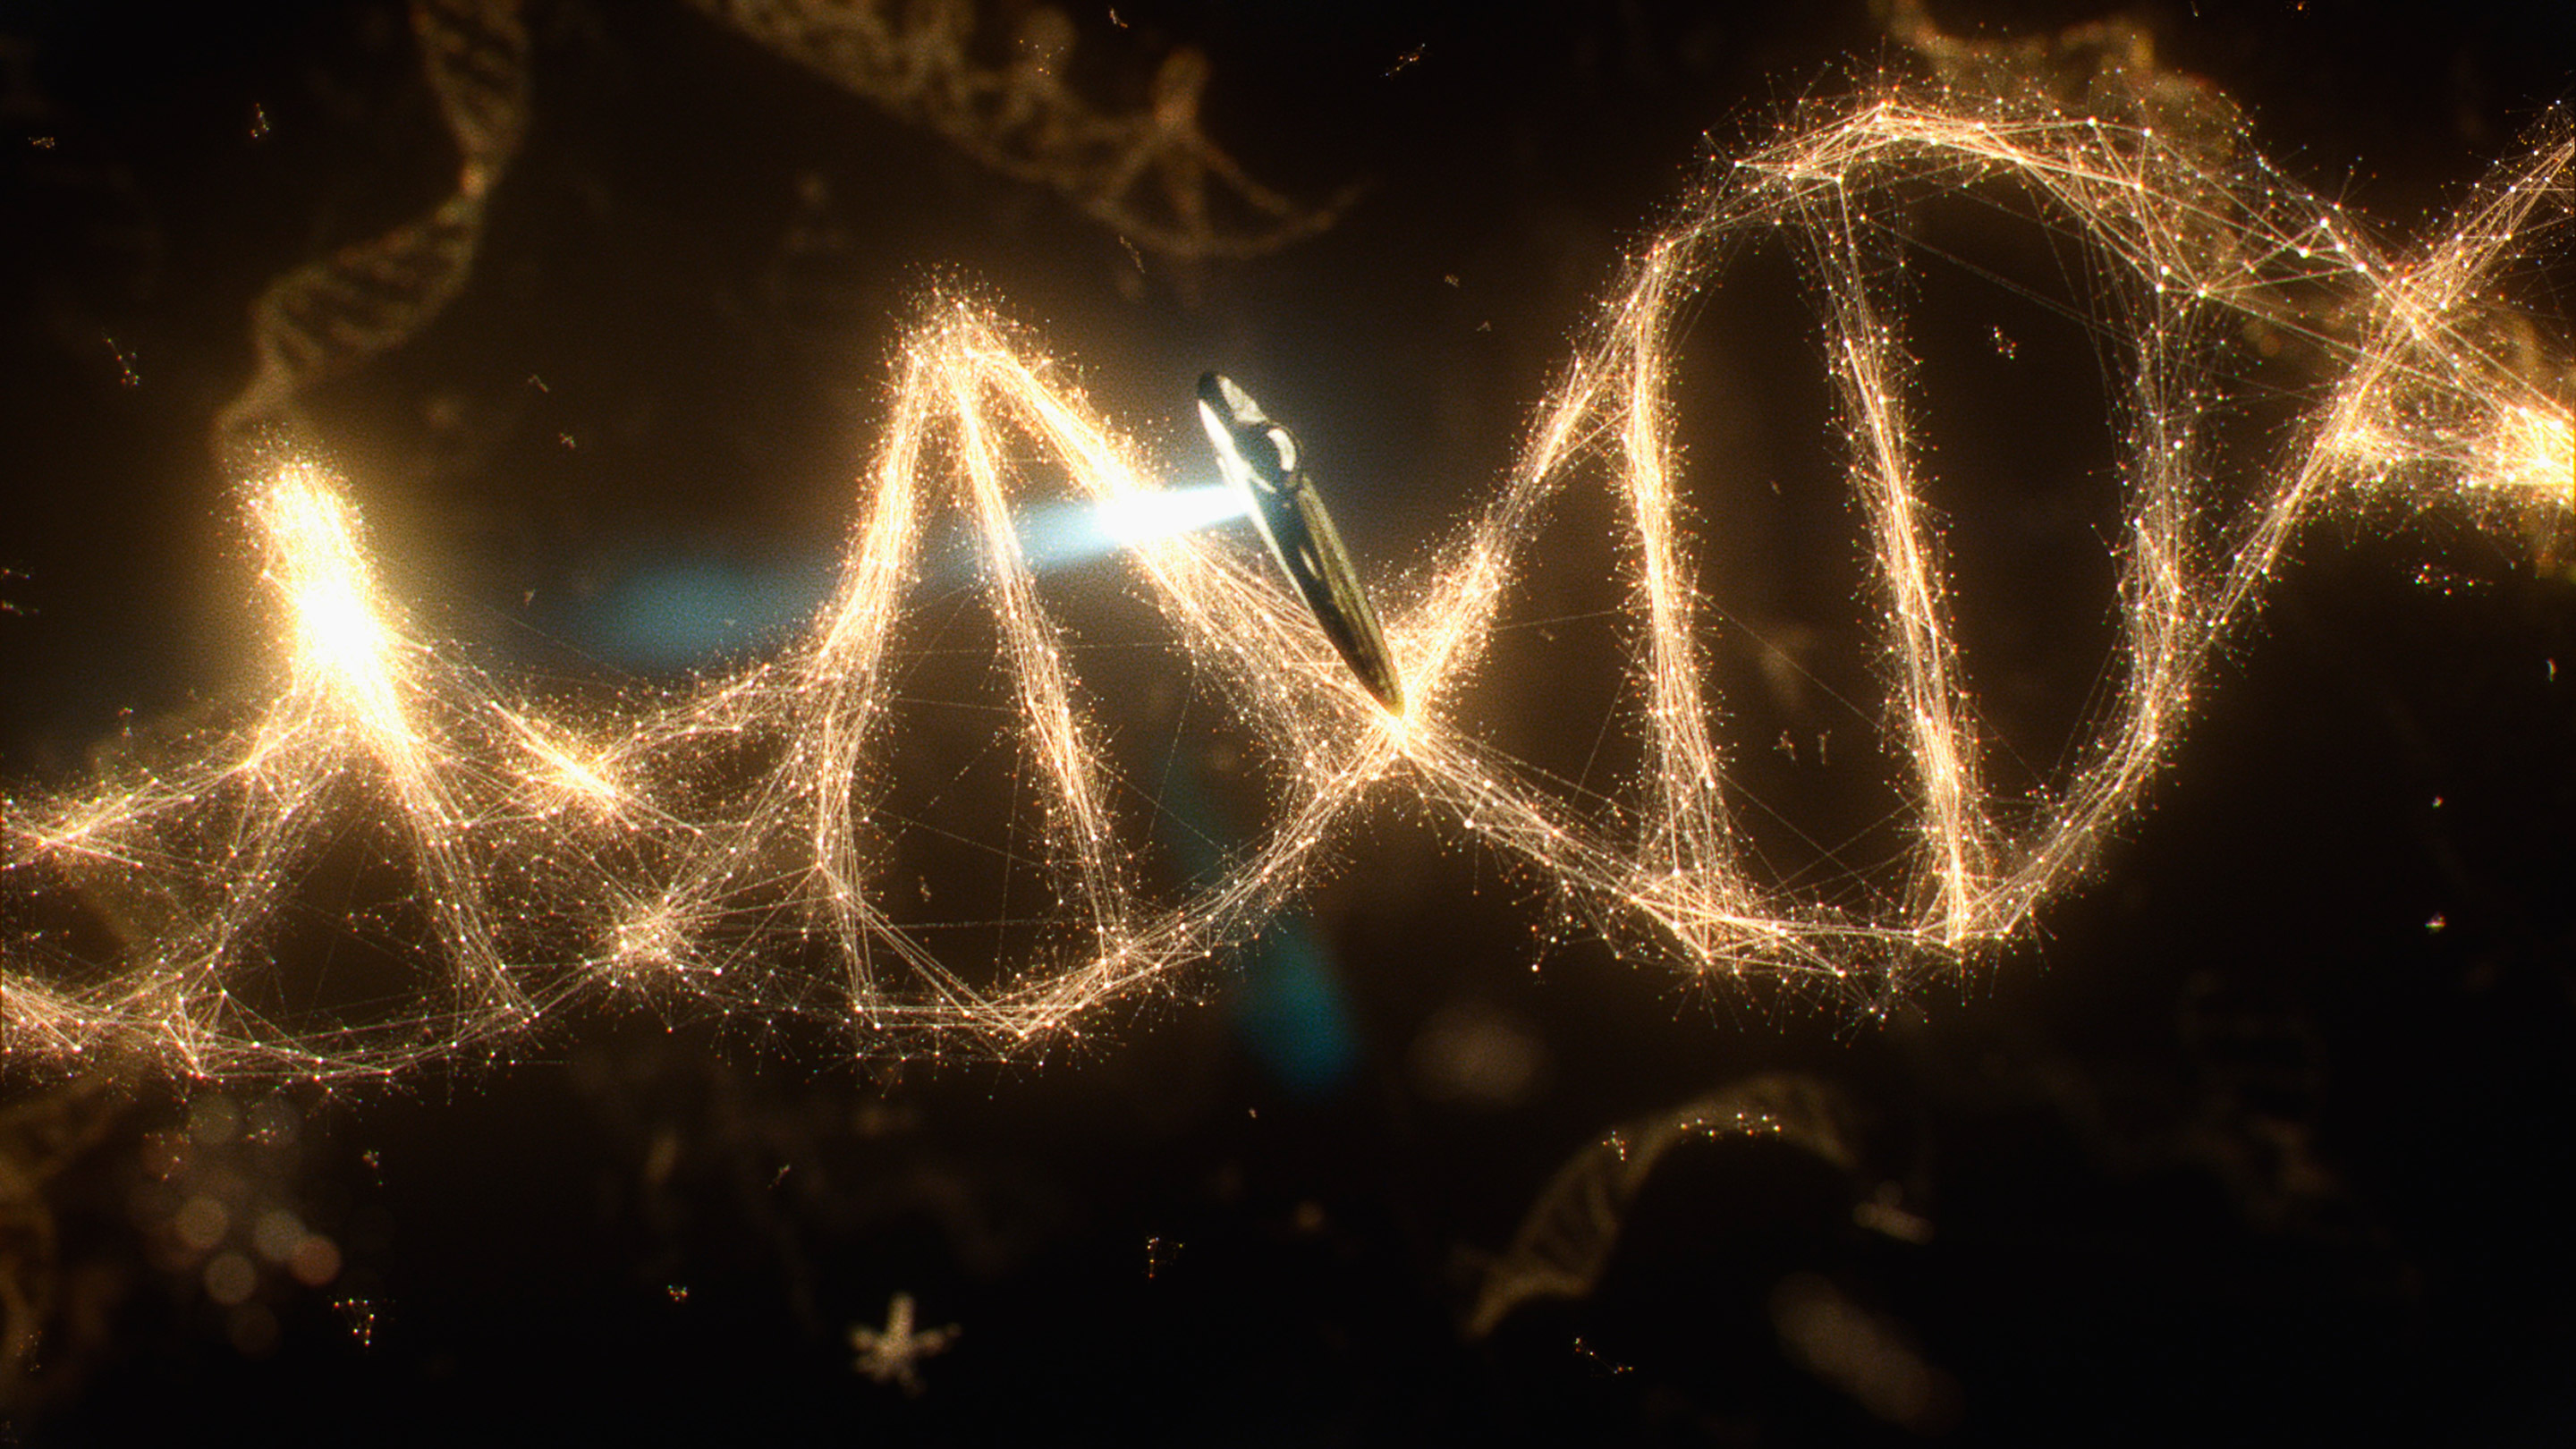 The relatedness of all living things and the possible evolution of life in the is explored in the second episode.  Image: Fox Broadcasting